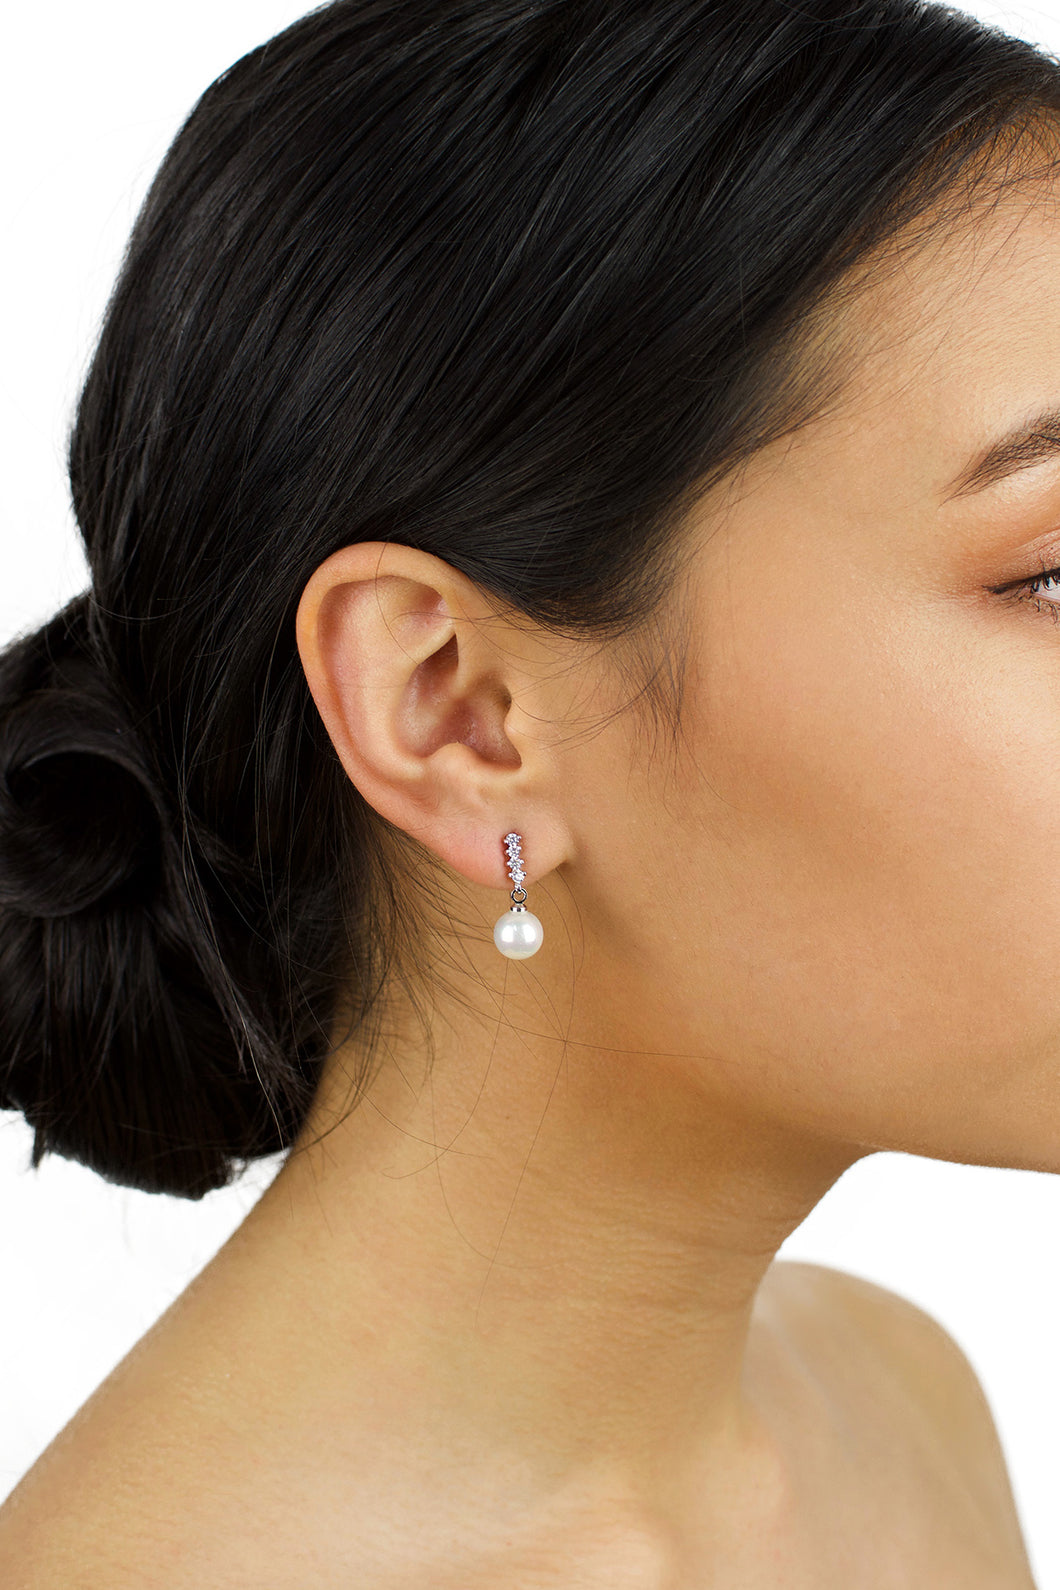 Dark Haired model wearing a single pearl drop earring with a white background